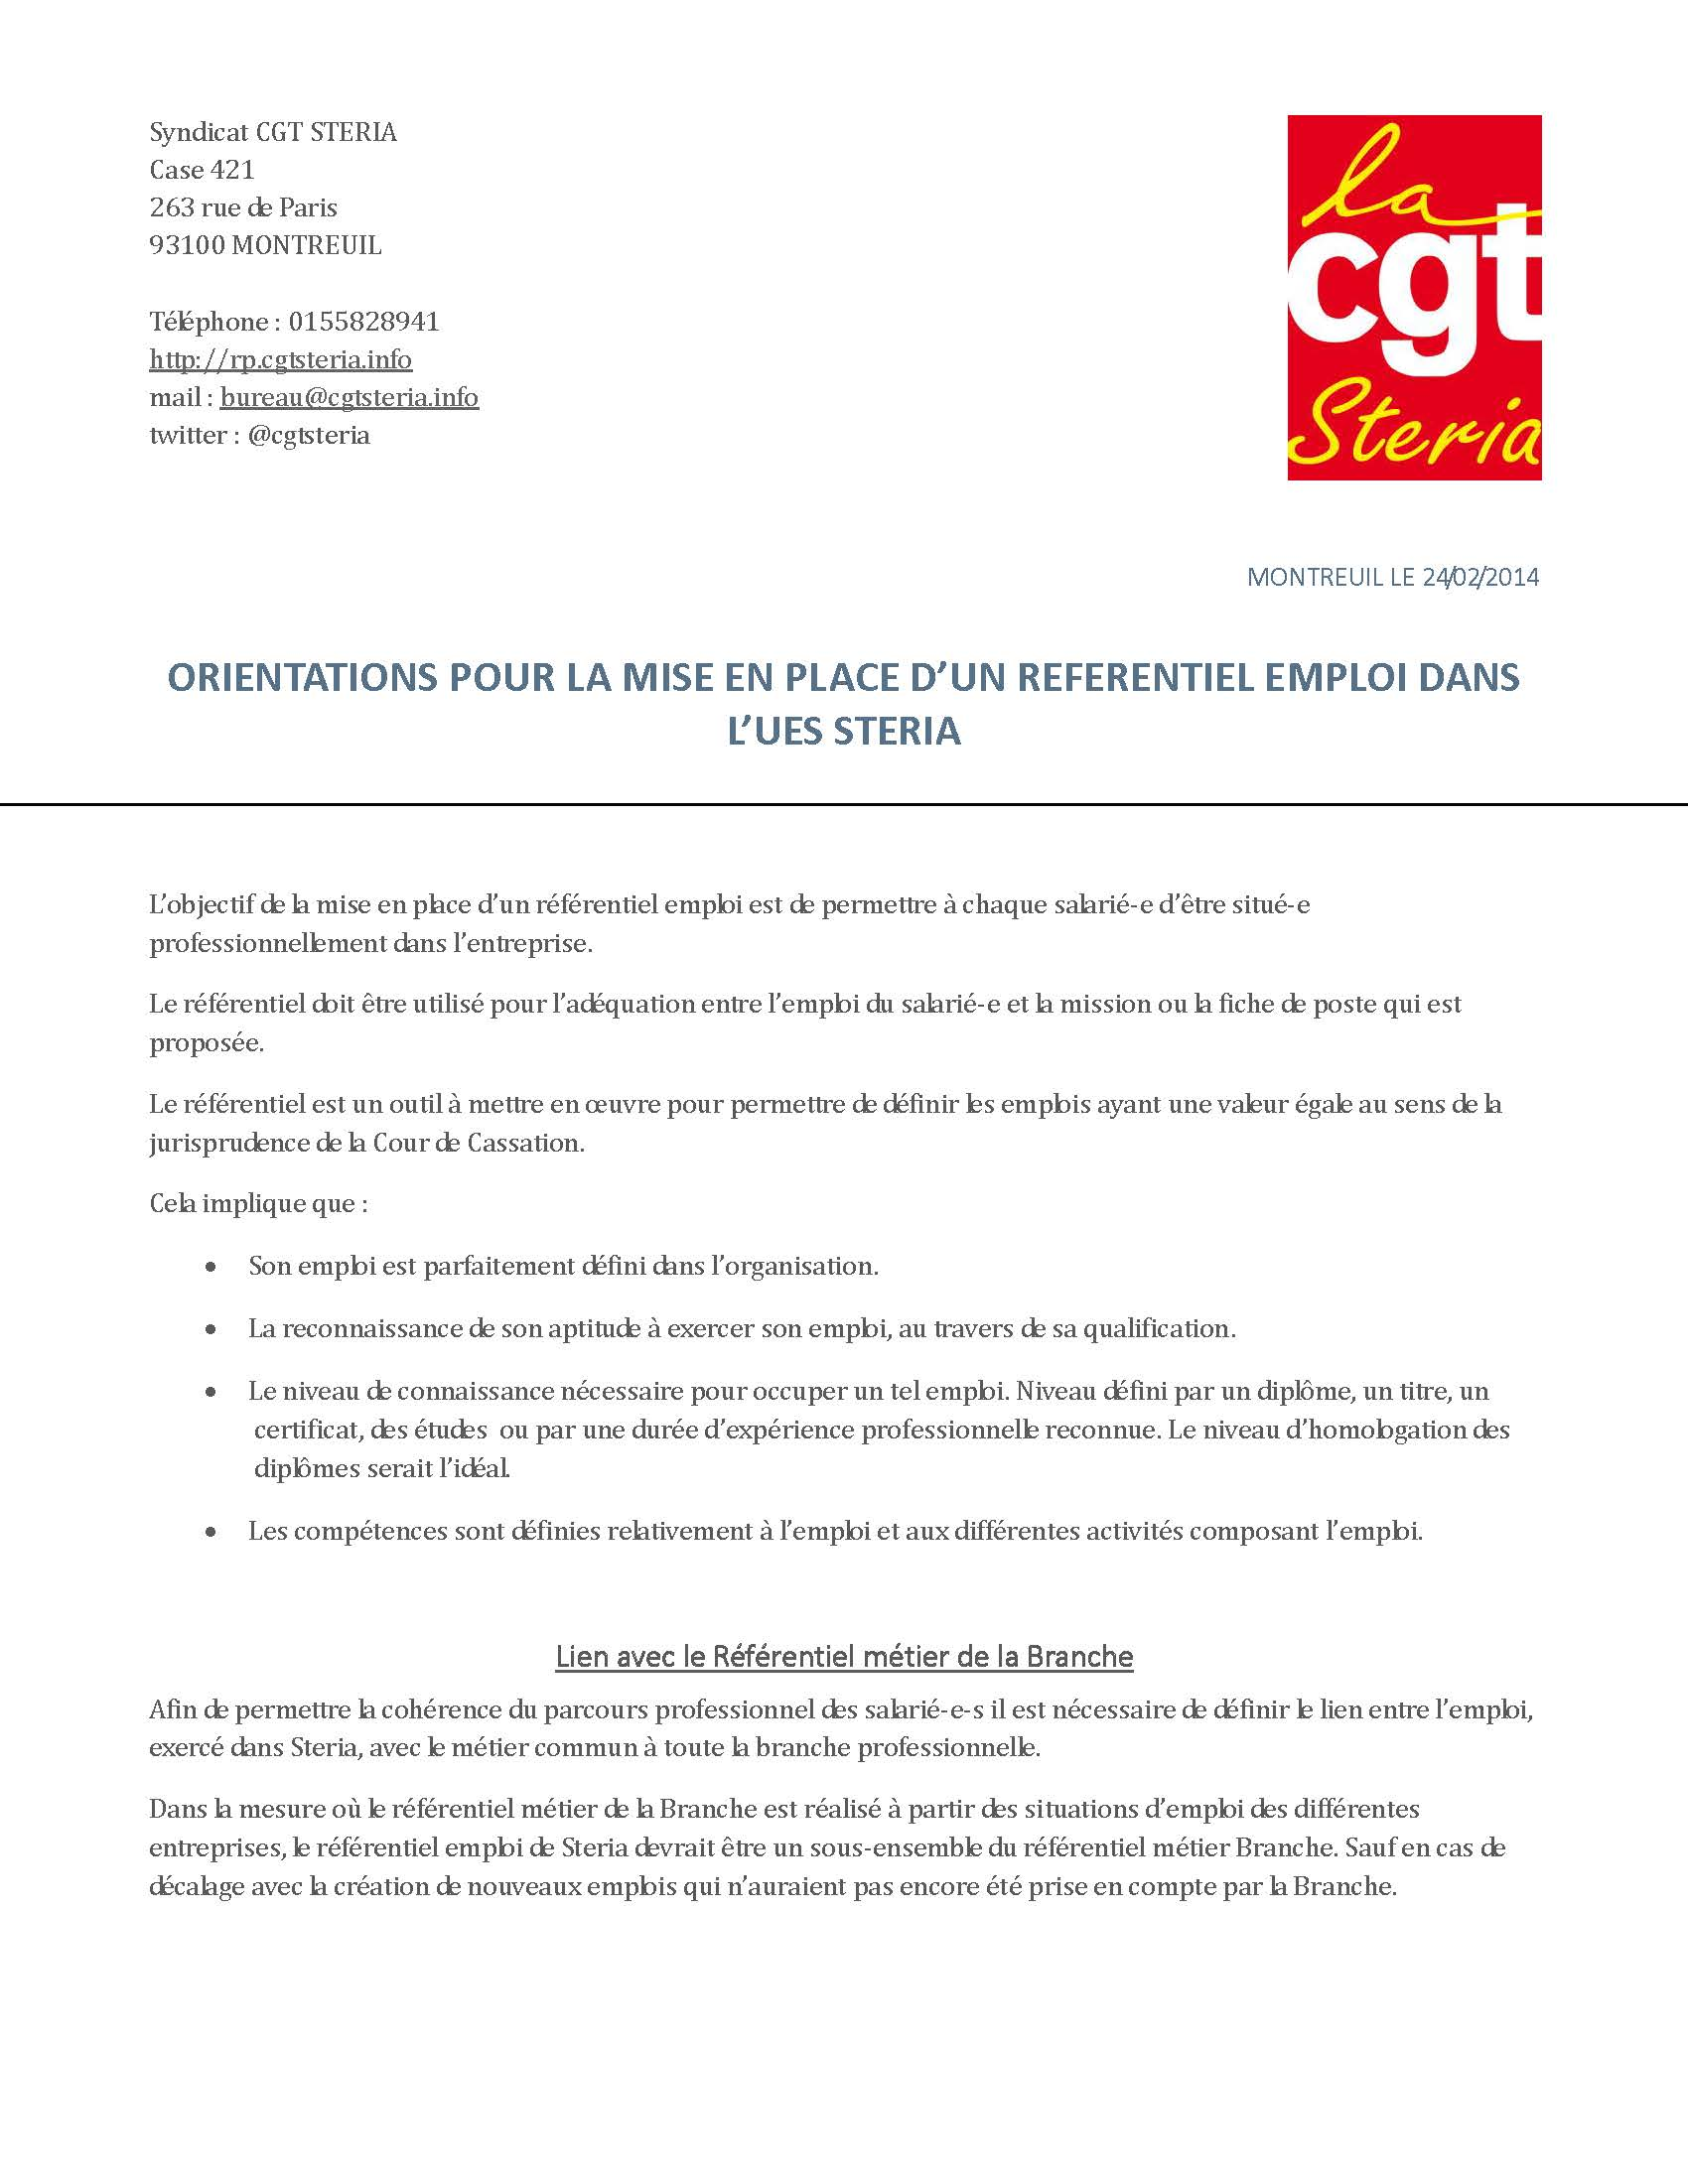 CGT-Document d'Orientation referentiel emploi version 1 1